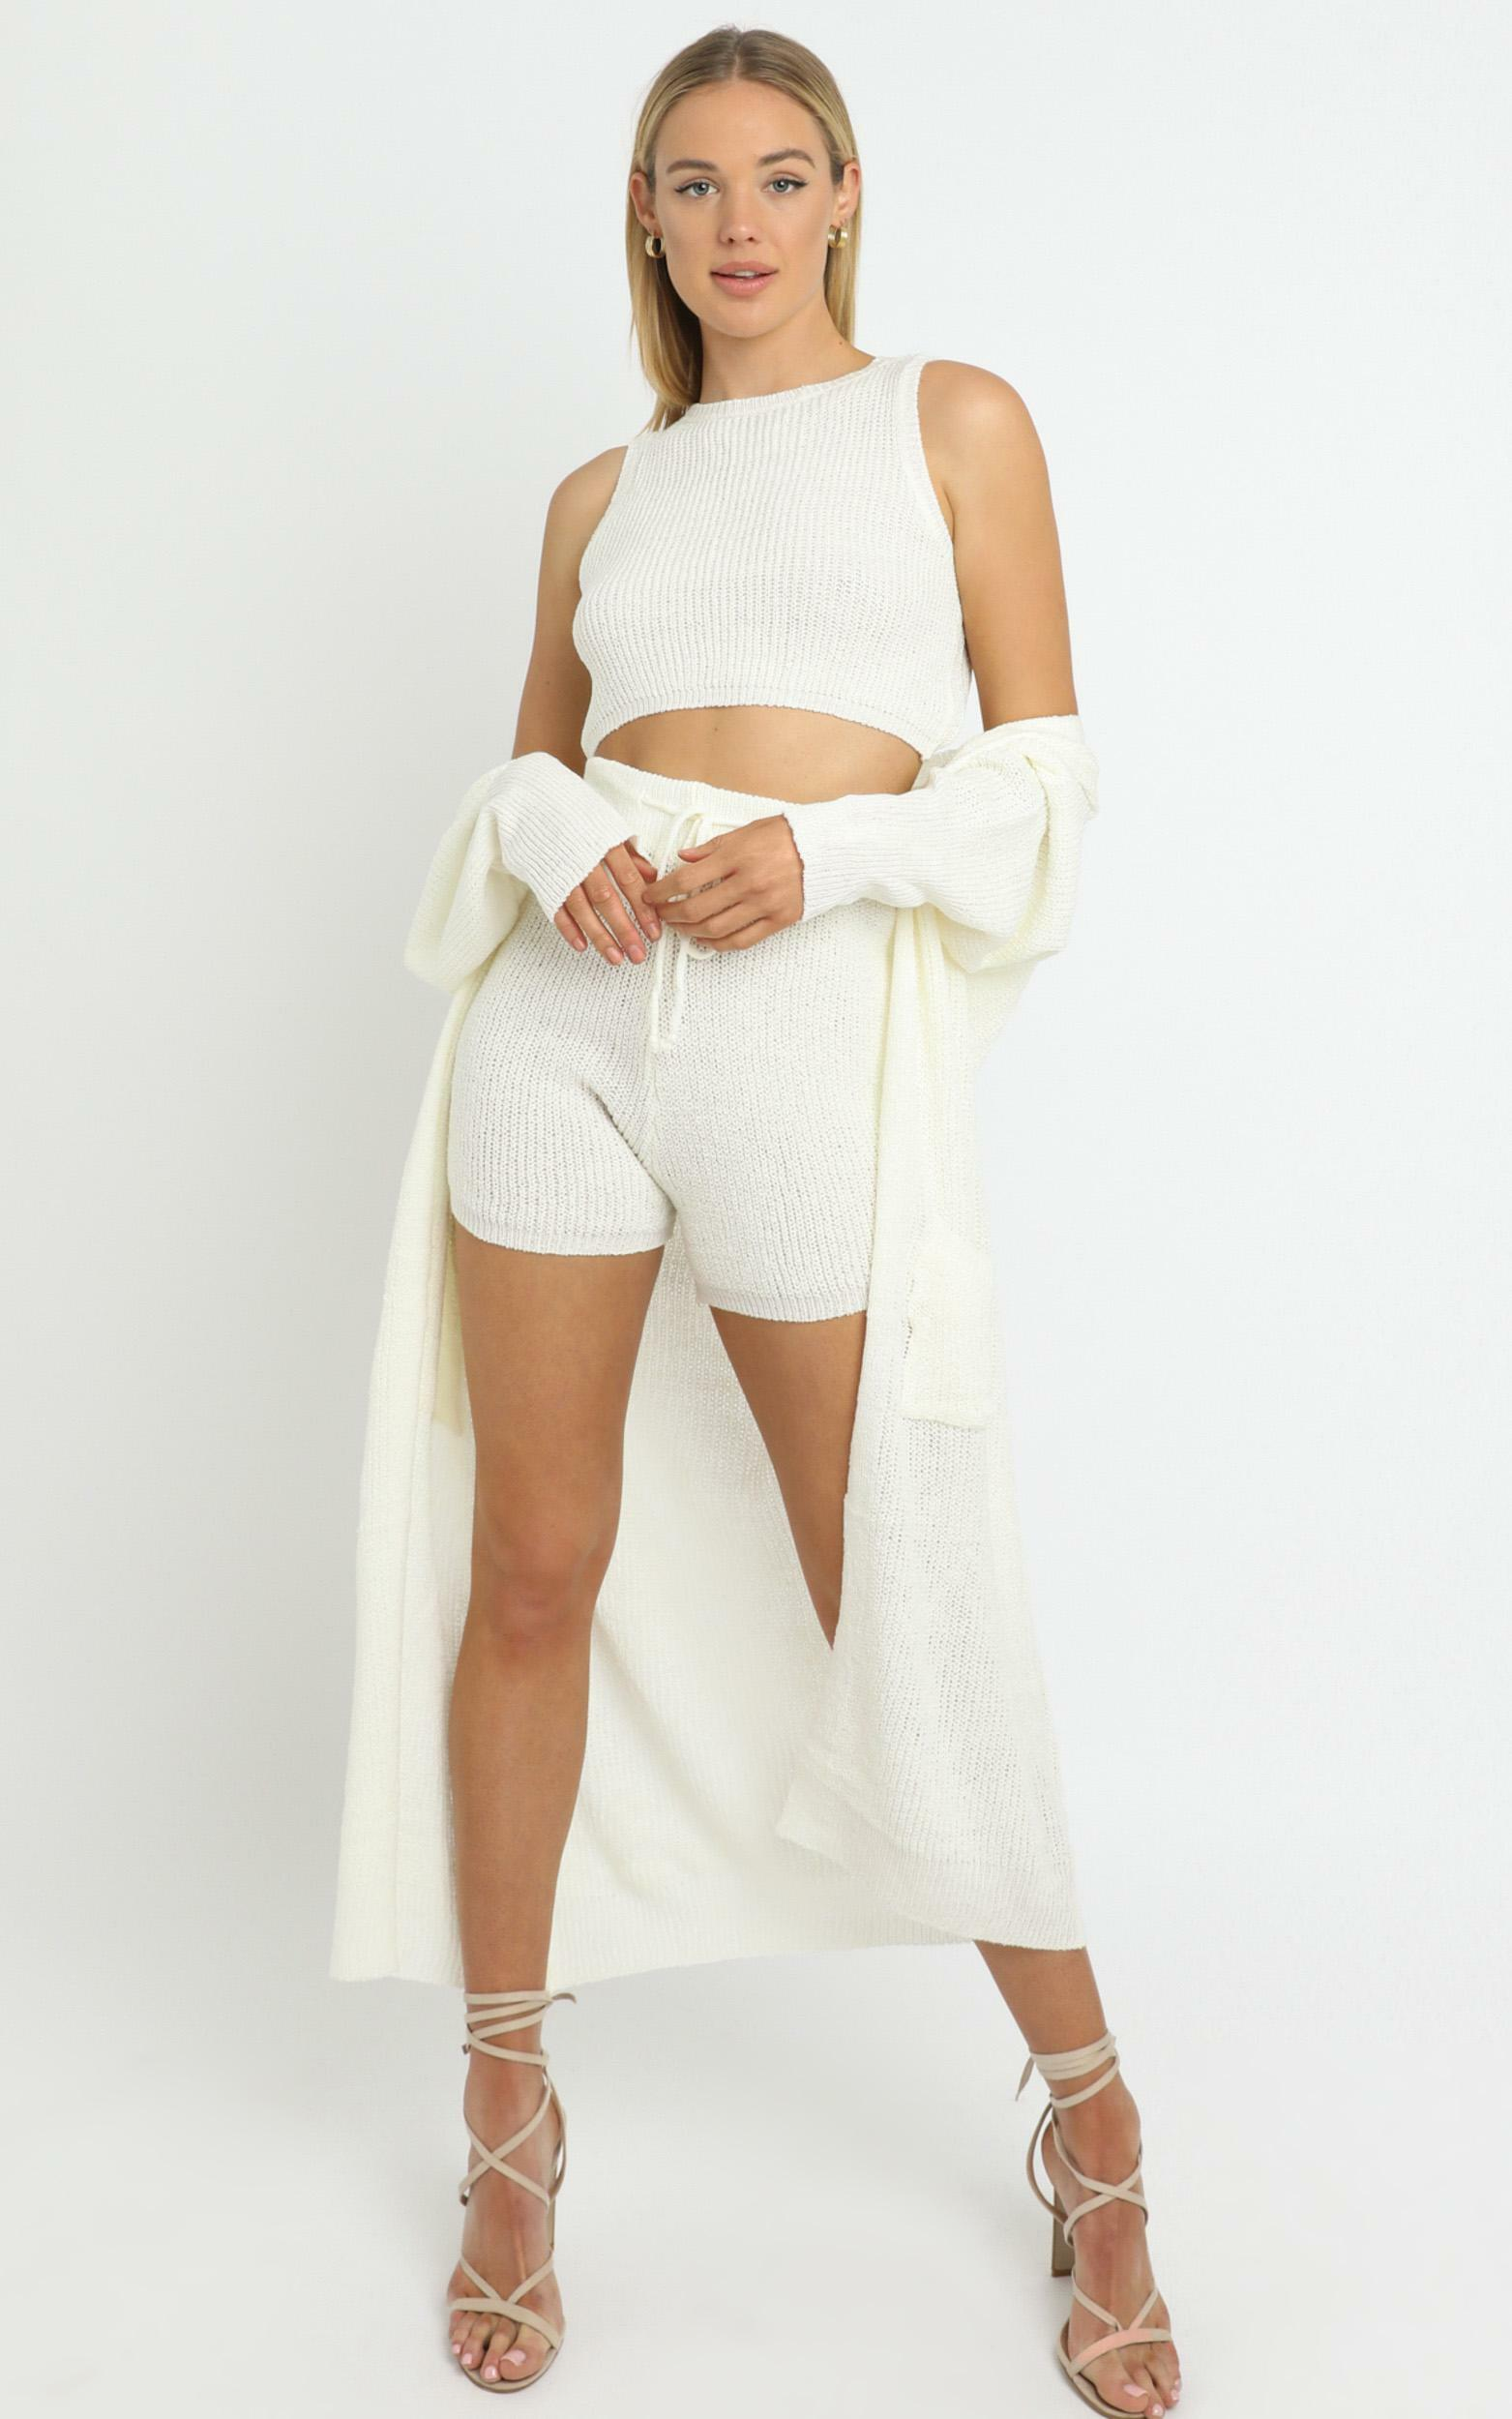 Saffron Knit Three Piece Set White - L/XL, White, hi-res image number null